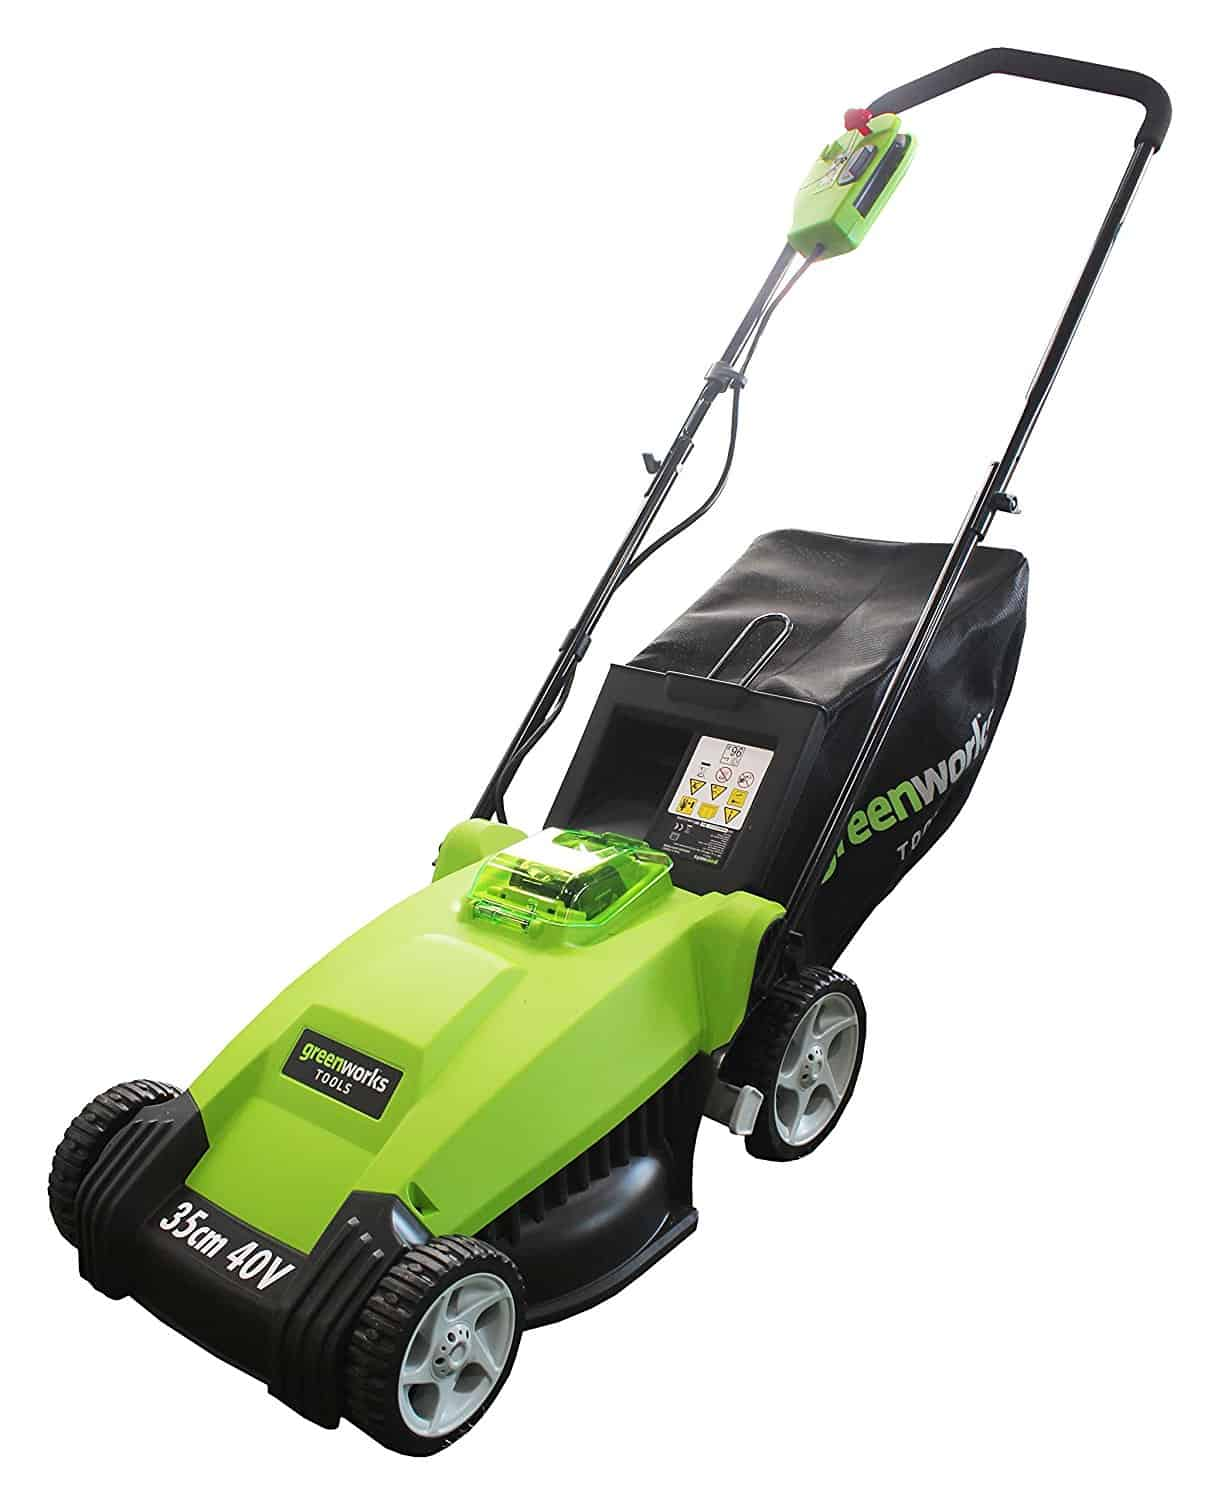 Best Electric Cordless Lawn Mower – Greenworks